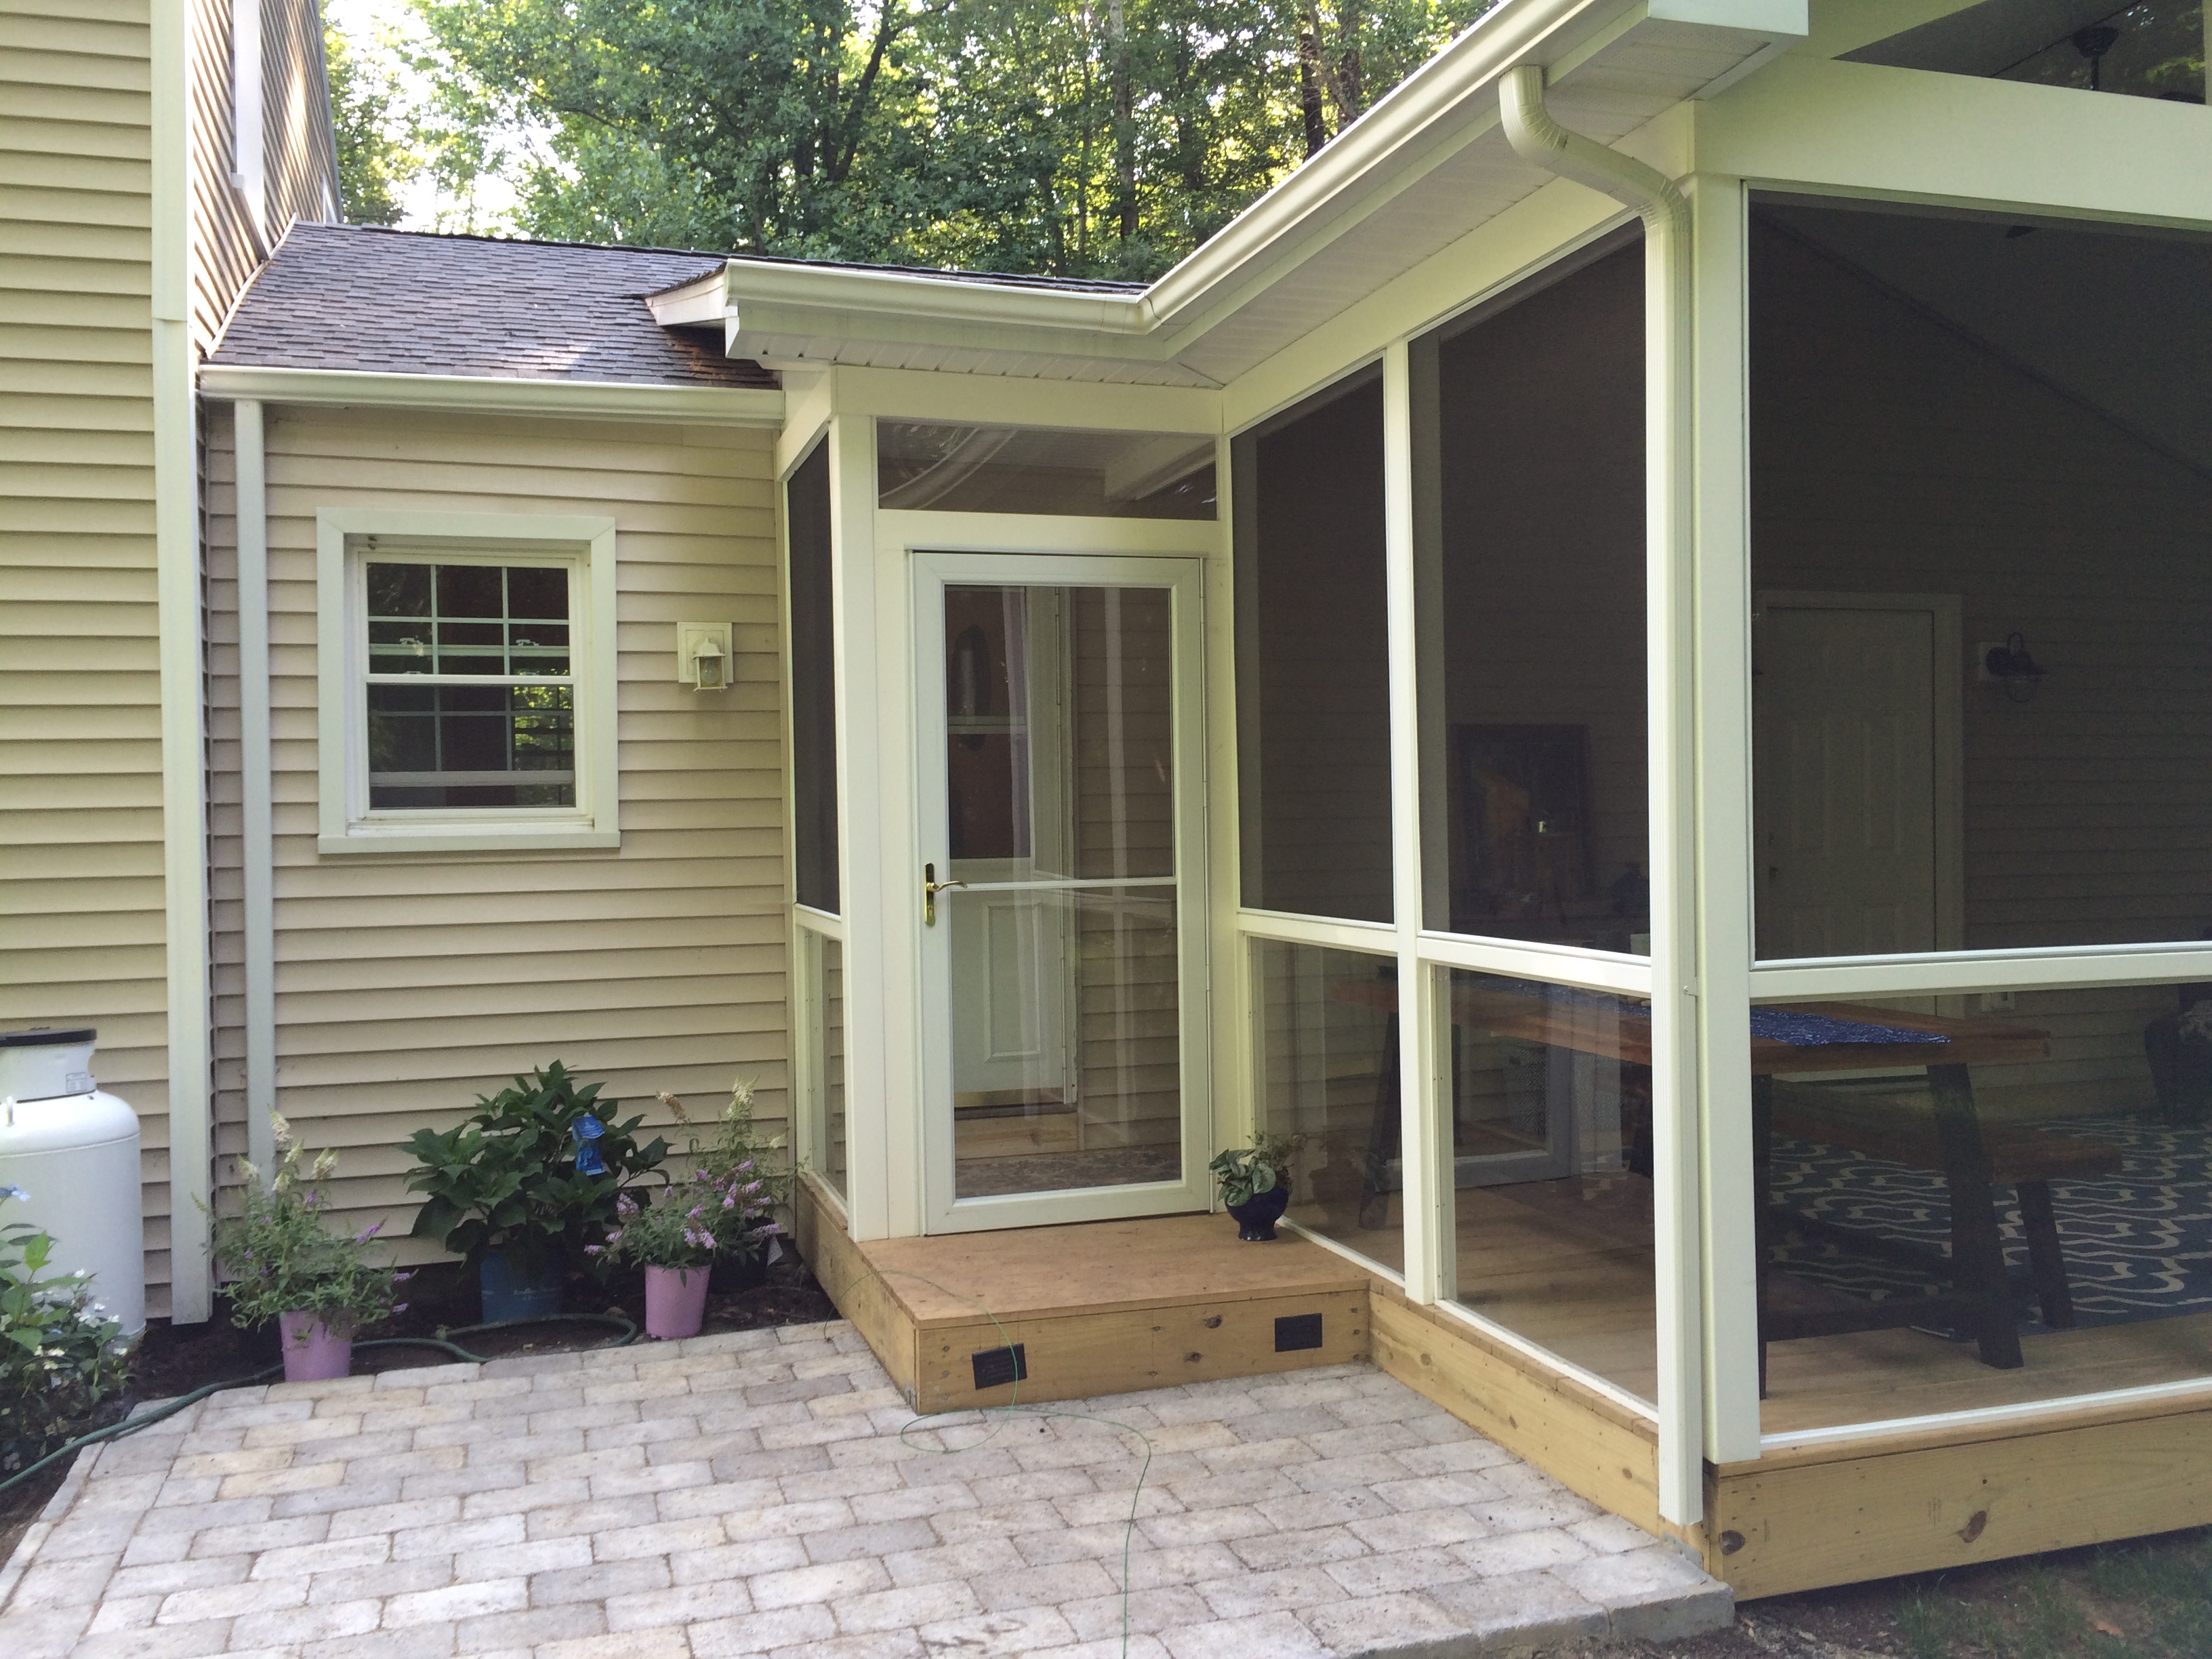 Grade Level Screened In Deck With Patio By Archadeck